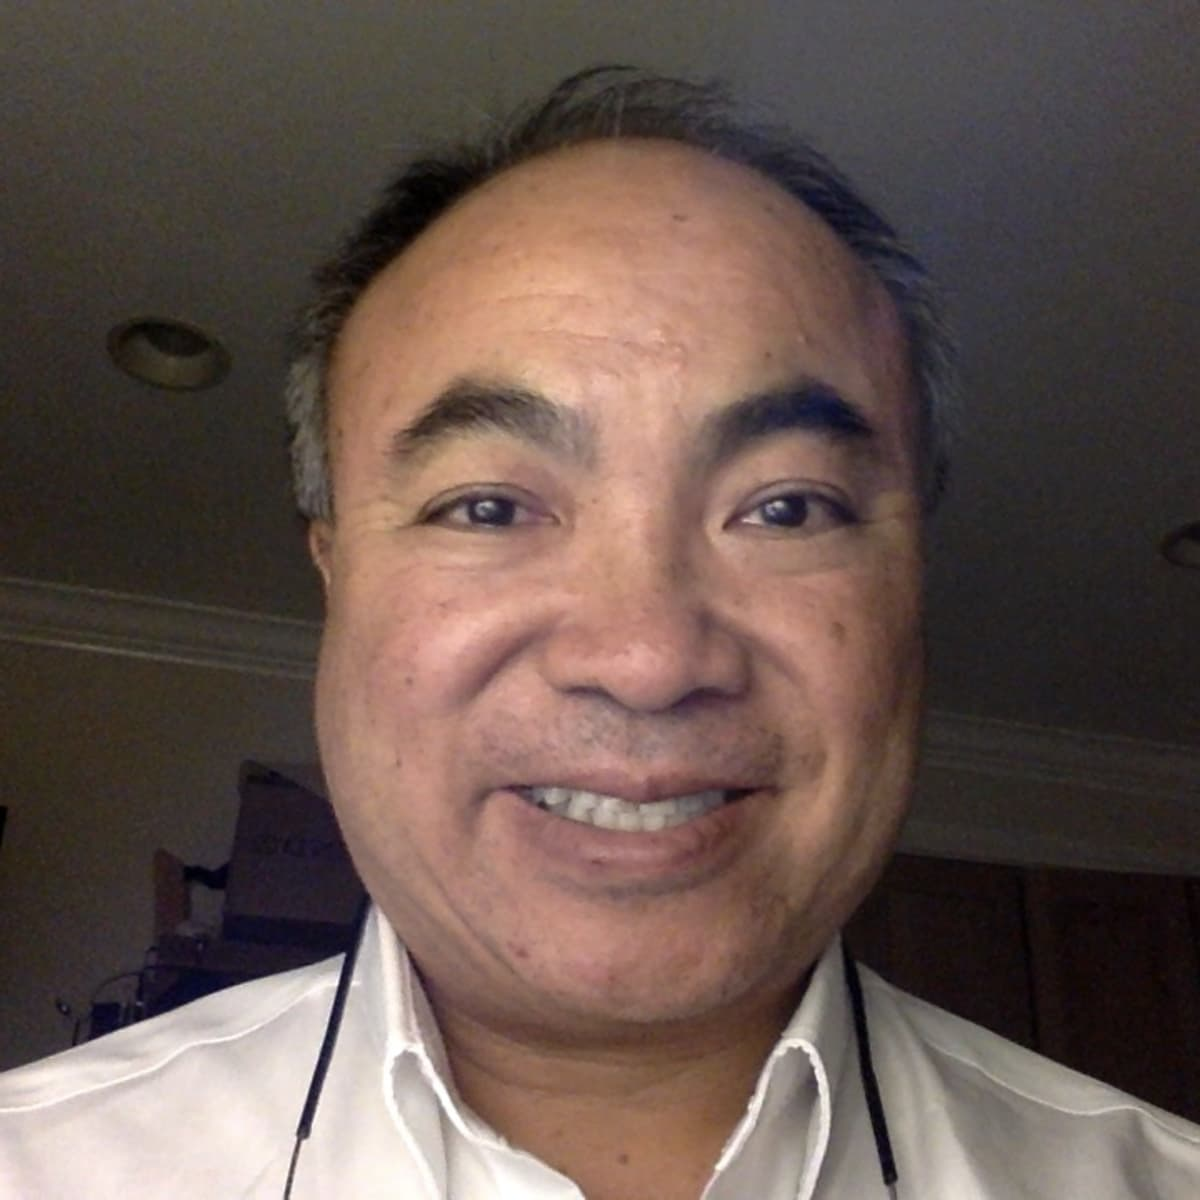 Dr. Steven Wong, MD   Los Angeles, CA   Oncologist